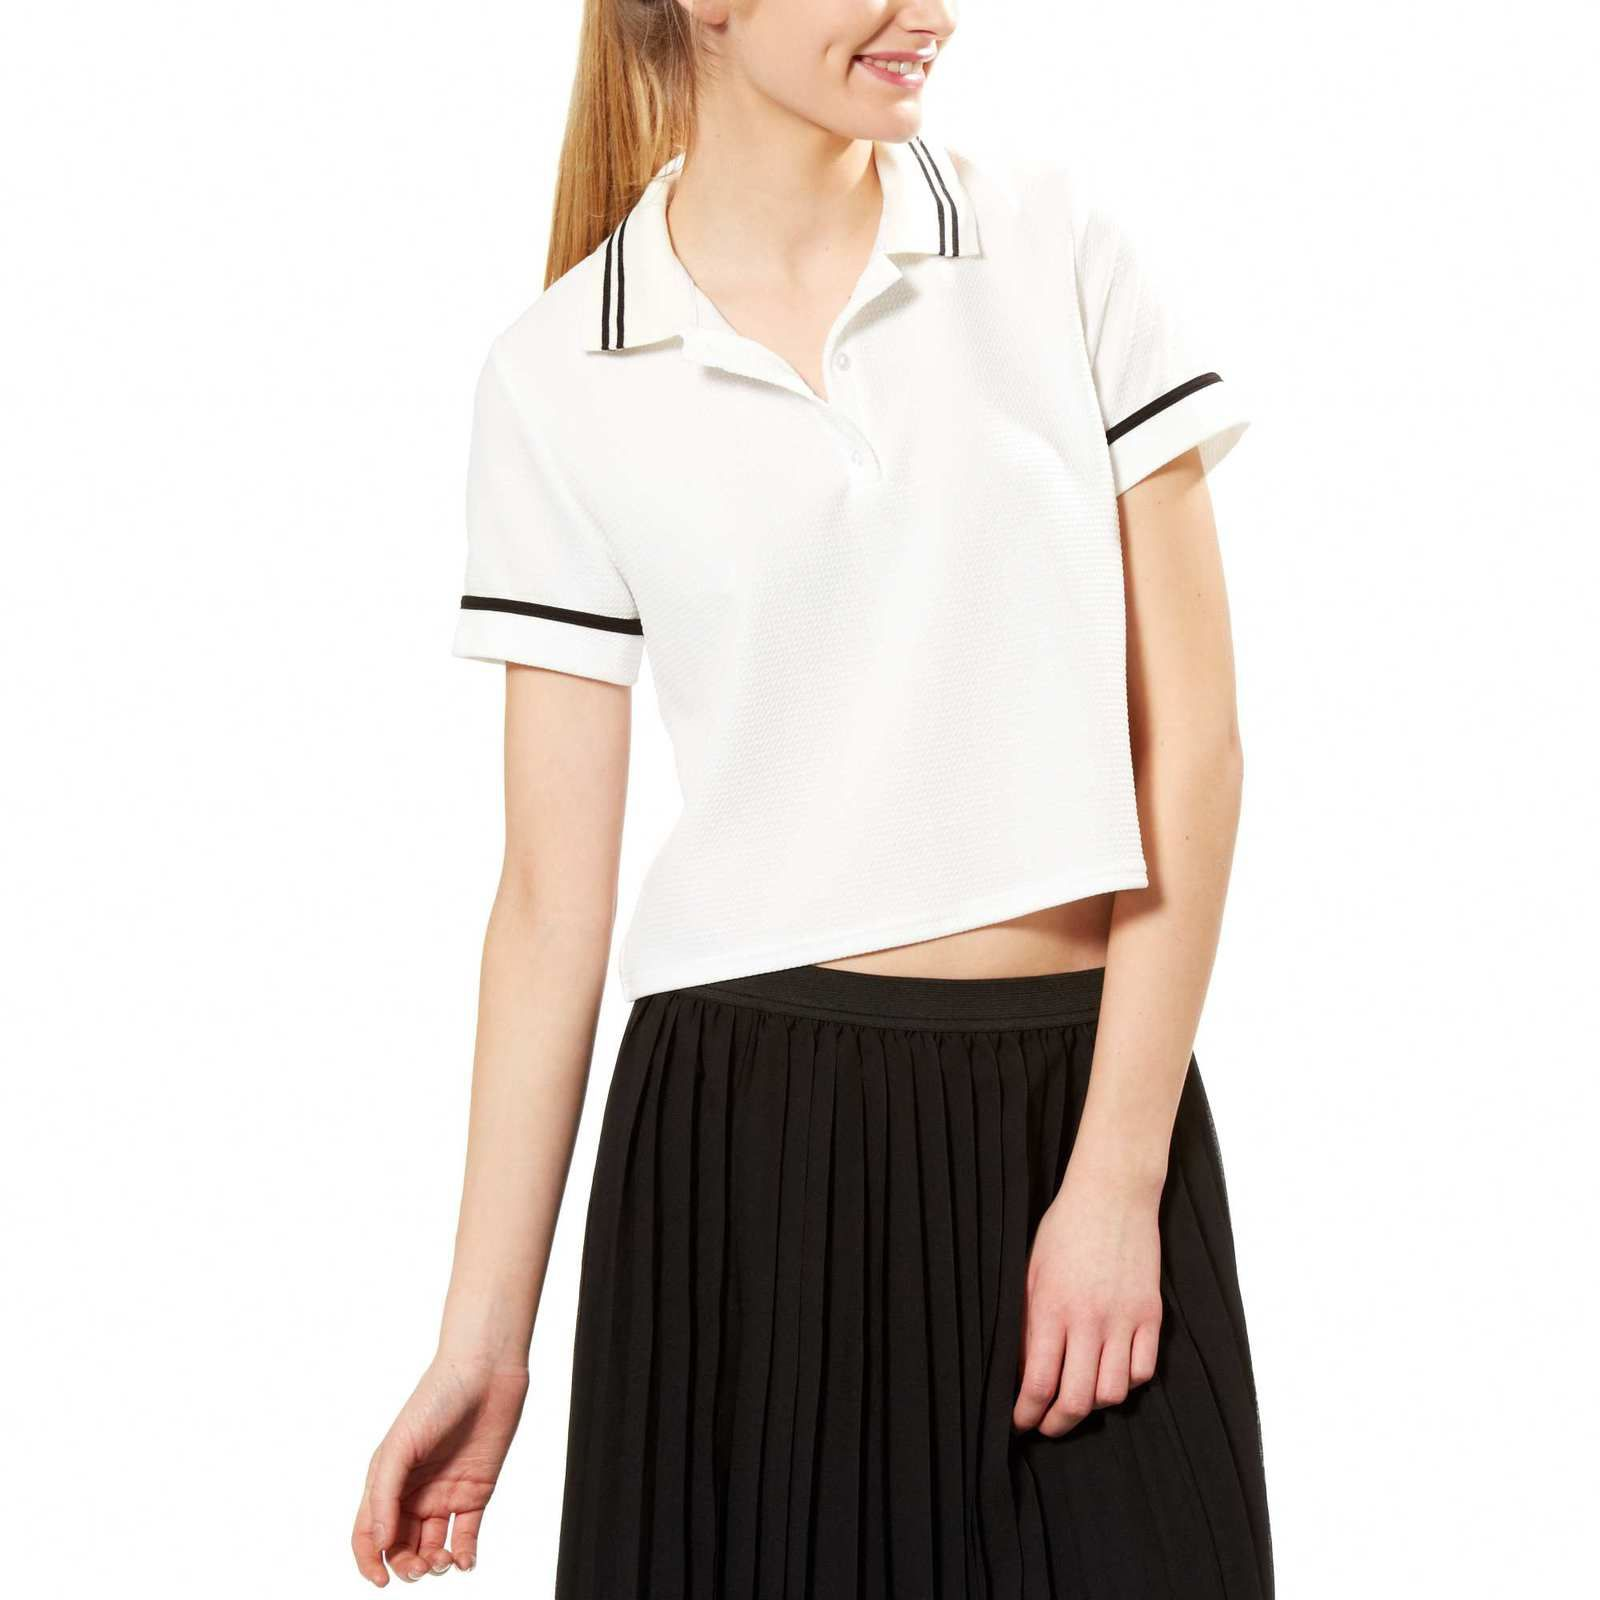 Polo cropped Kiabi, 13 €